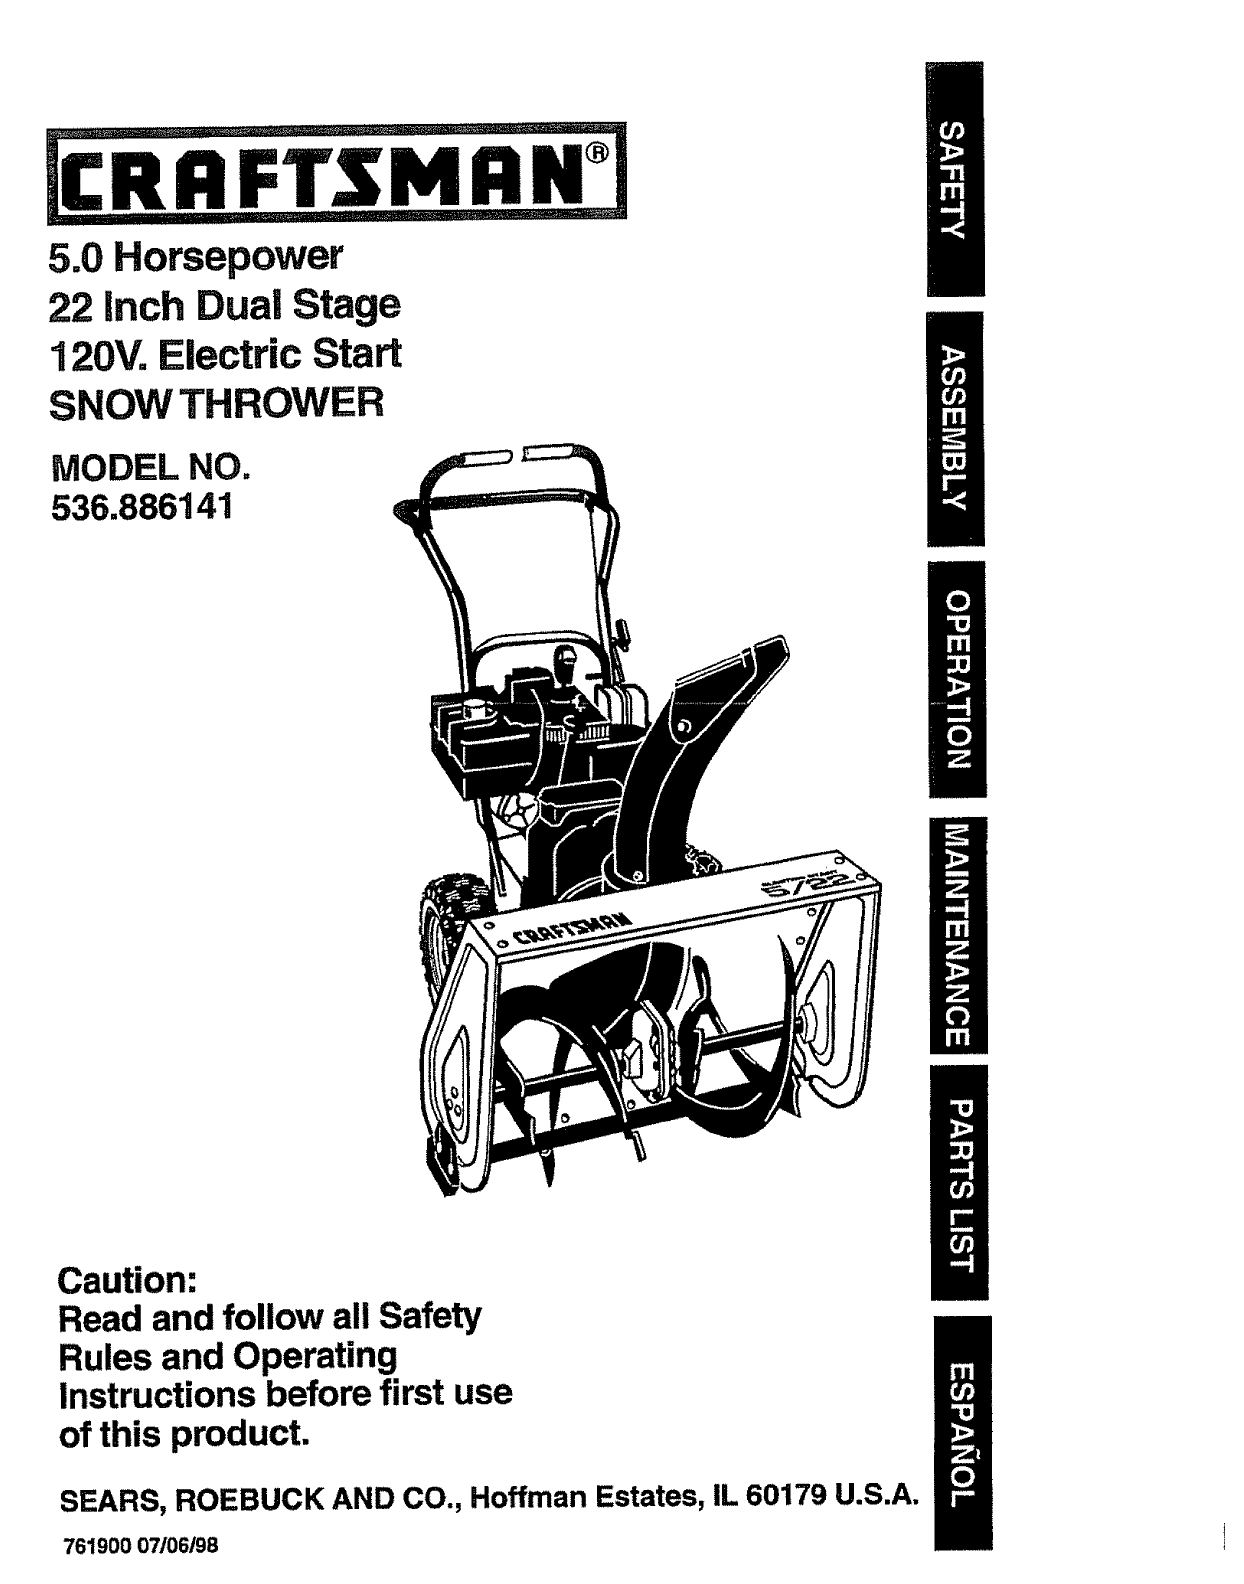 craftsman snow blower 536 886141 user guide manualsonline com rh lawnandgarden manualsonline com Craftsman 5 HP Snowblower Manual Craftsman 536 Snowblower Parts